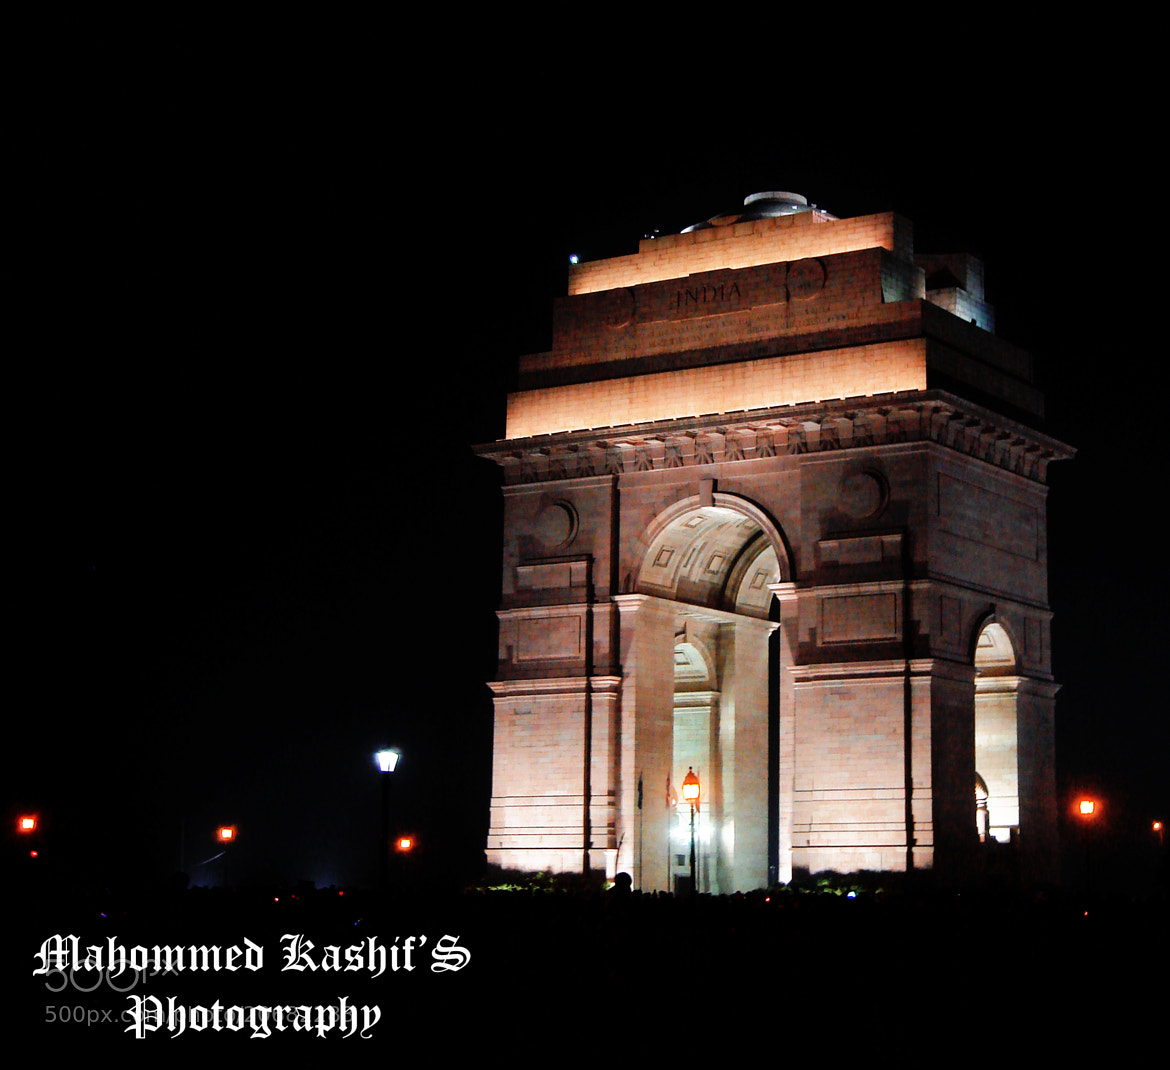 Photograph India Gate by Mahommed kashif on 500px